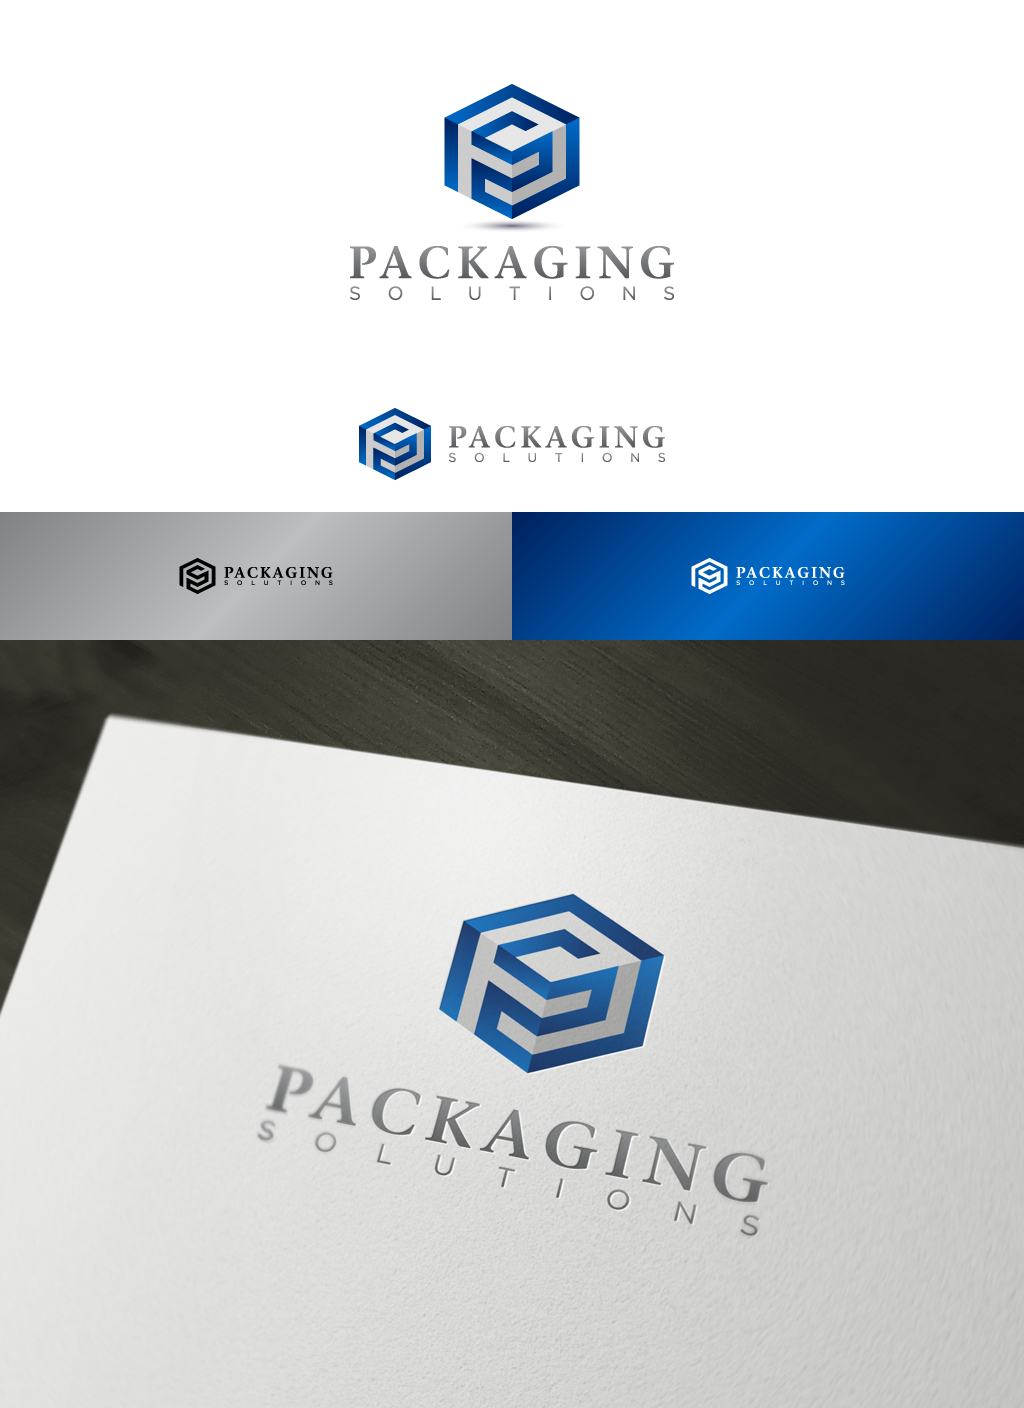 New logo wanted for Packaging Solutions